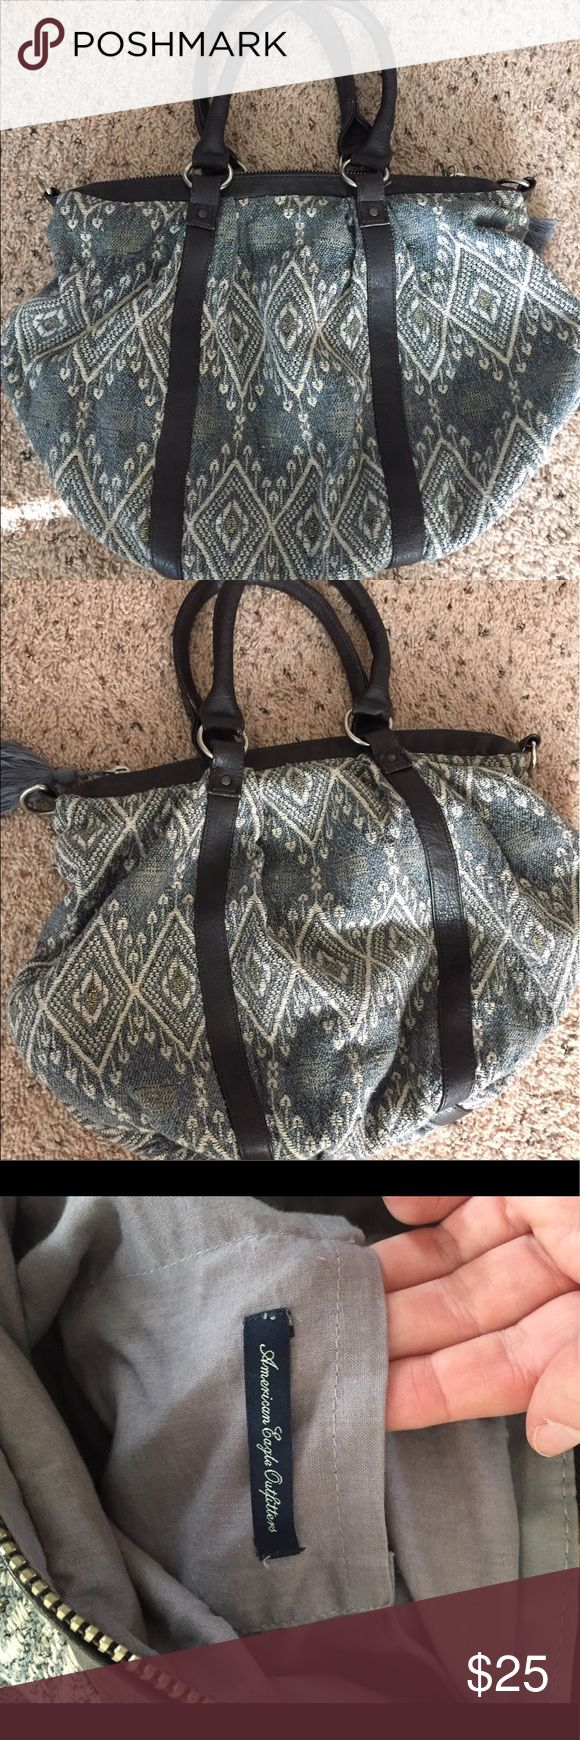 American eagle handbag Basically new. Gray and denim blue colored. Tassel on zipper. American eagle brand. American Eagle Outfitters Bags